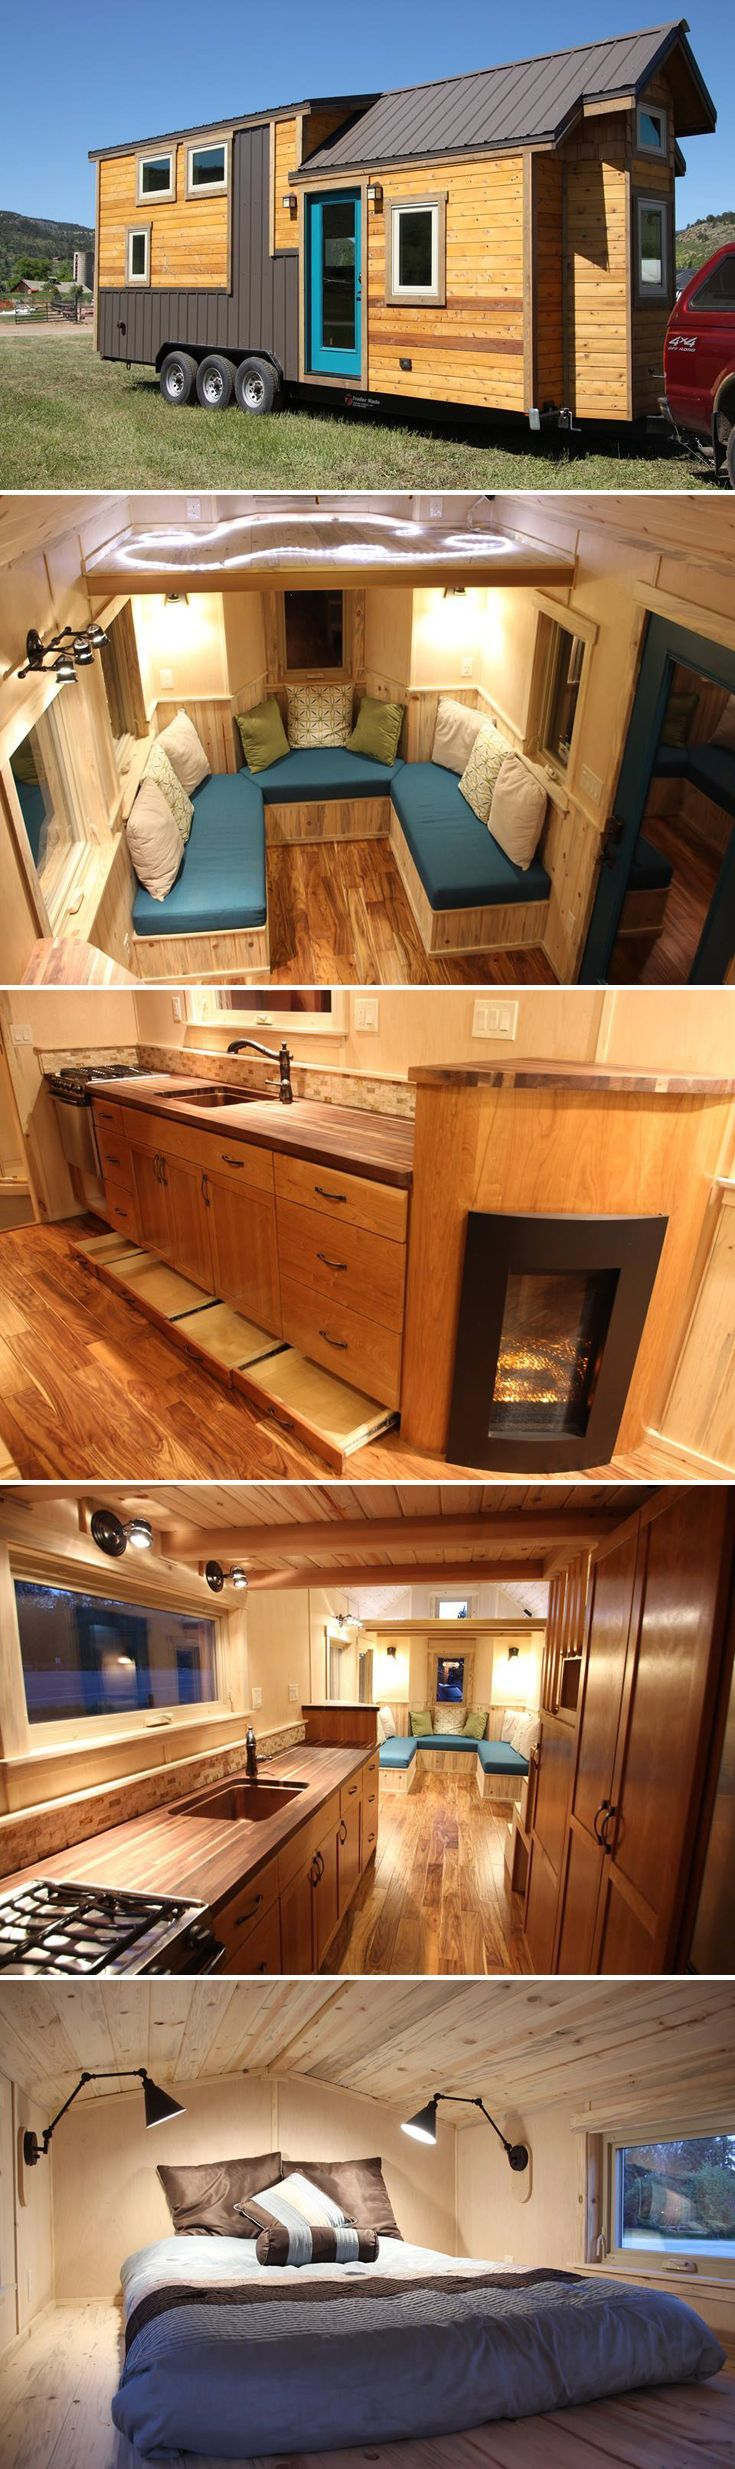 Built by Lyons, Colorado-based SimBLISSity, the Tahosa is a luxurious 26' tiny house on wheels with upgrades throughout.